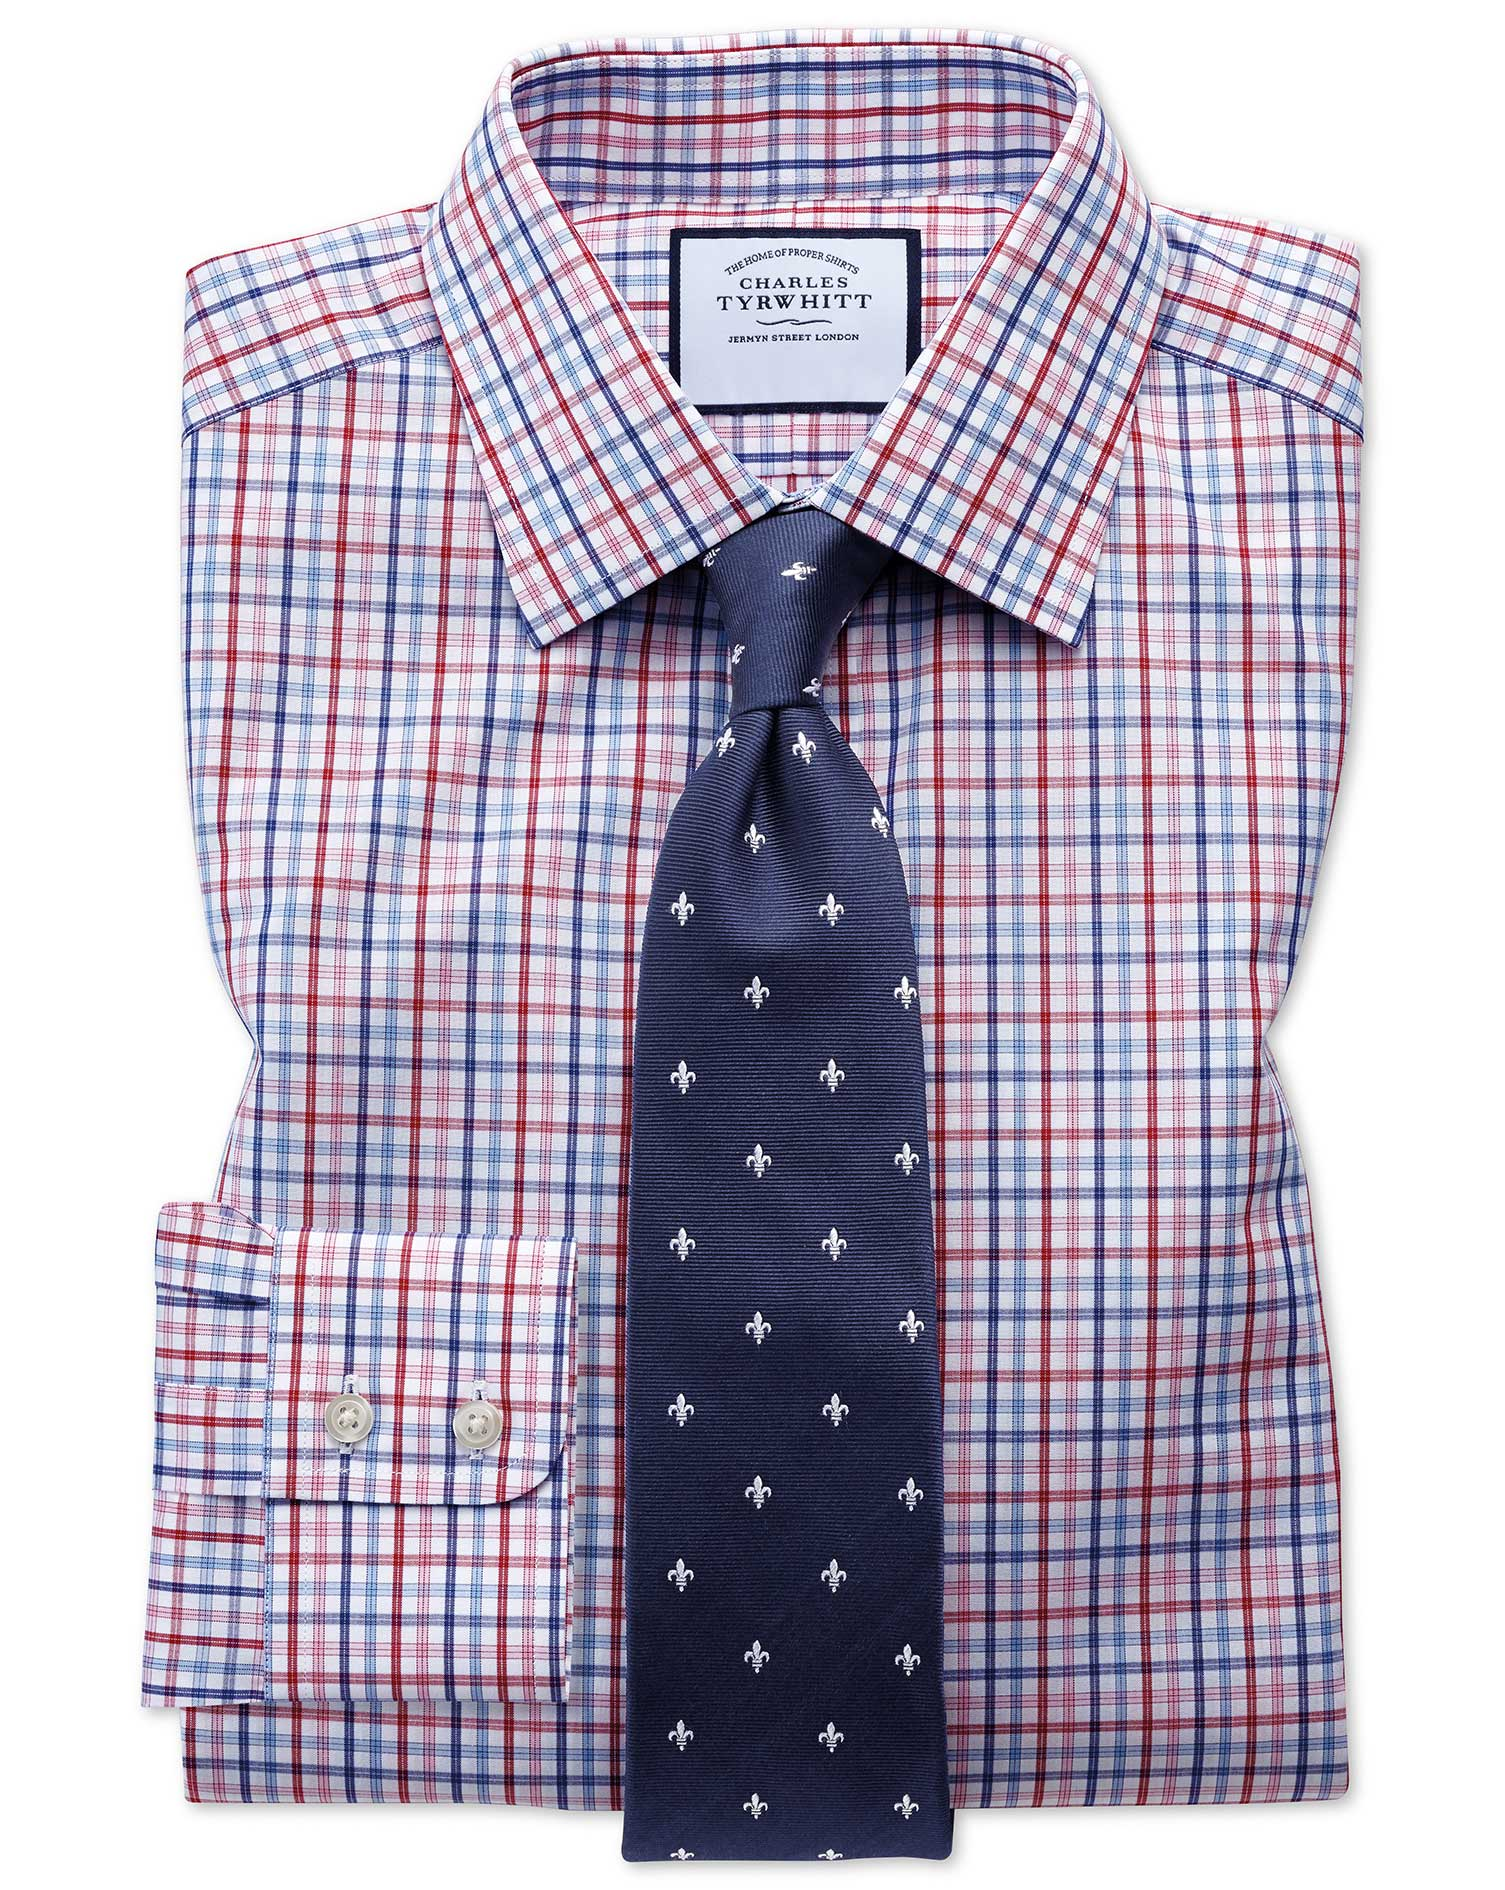 Extra Slim Fit Poplin Multi Red Check Cotton Formal Shirt Double Cuff Size 17/37 by Charles Tyrwhitt